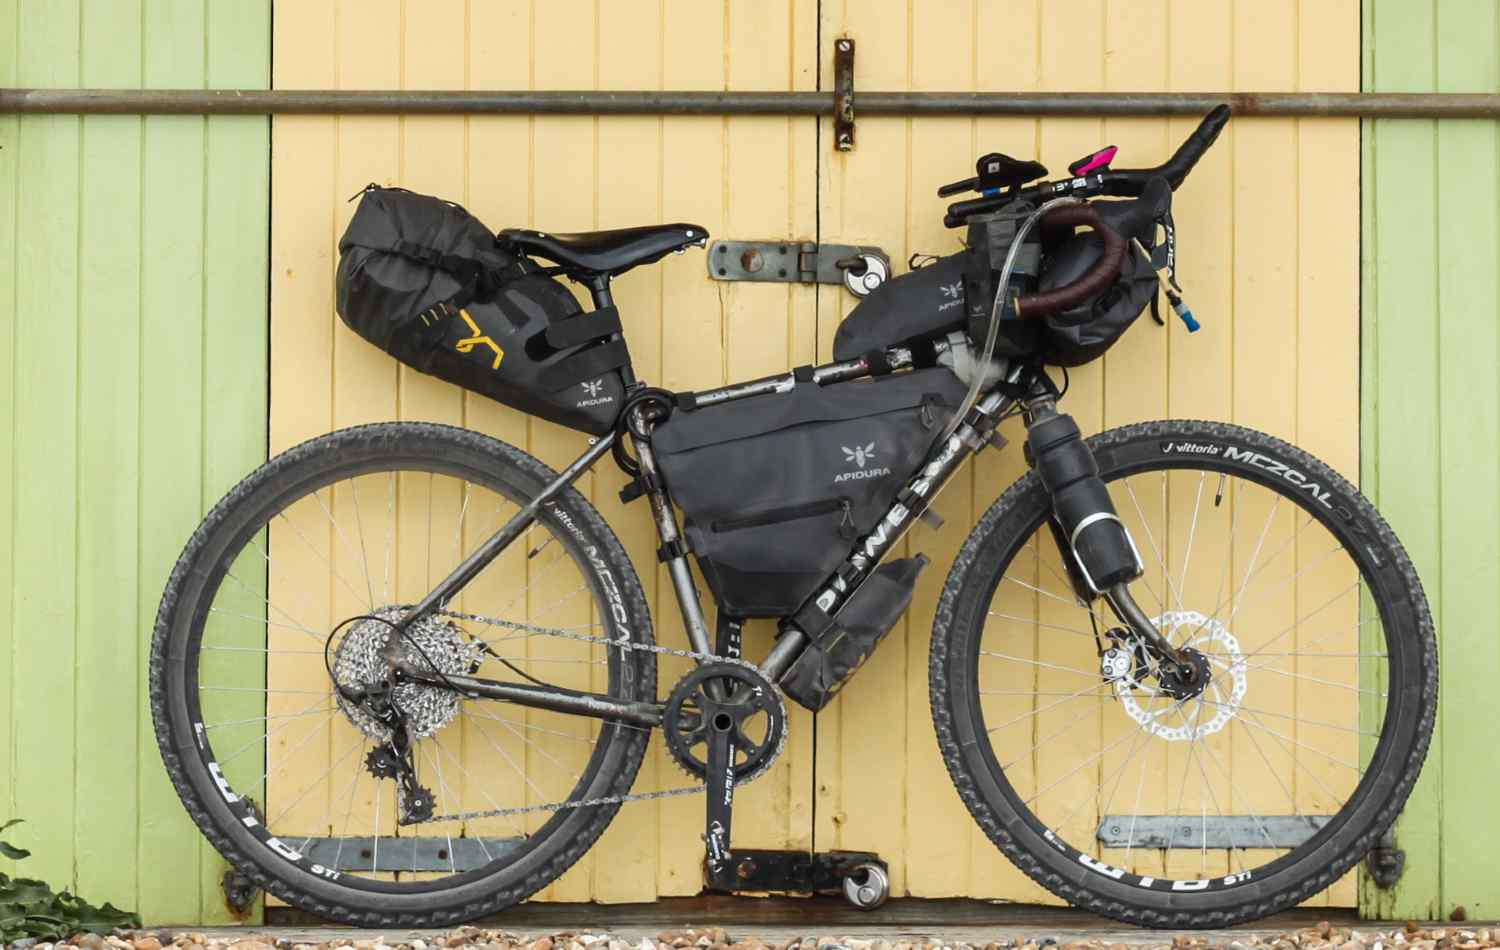 A bike leaning against a wall, covered in bikepacking bags